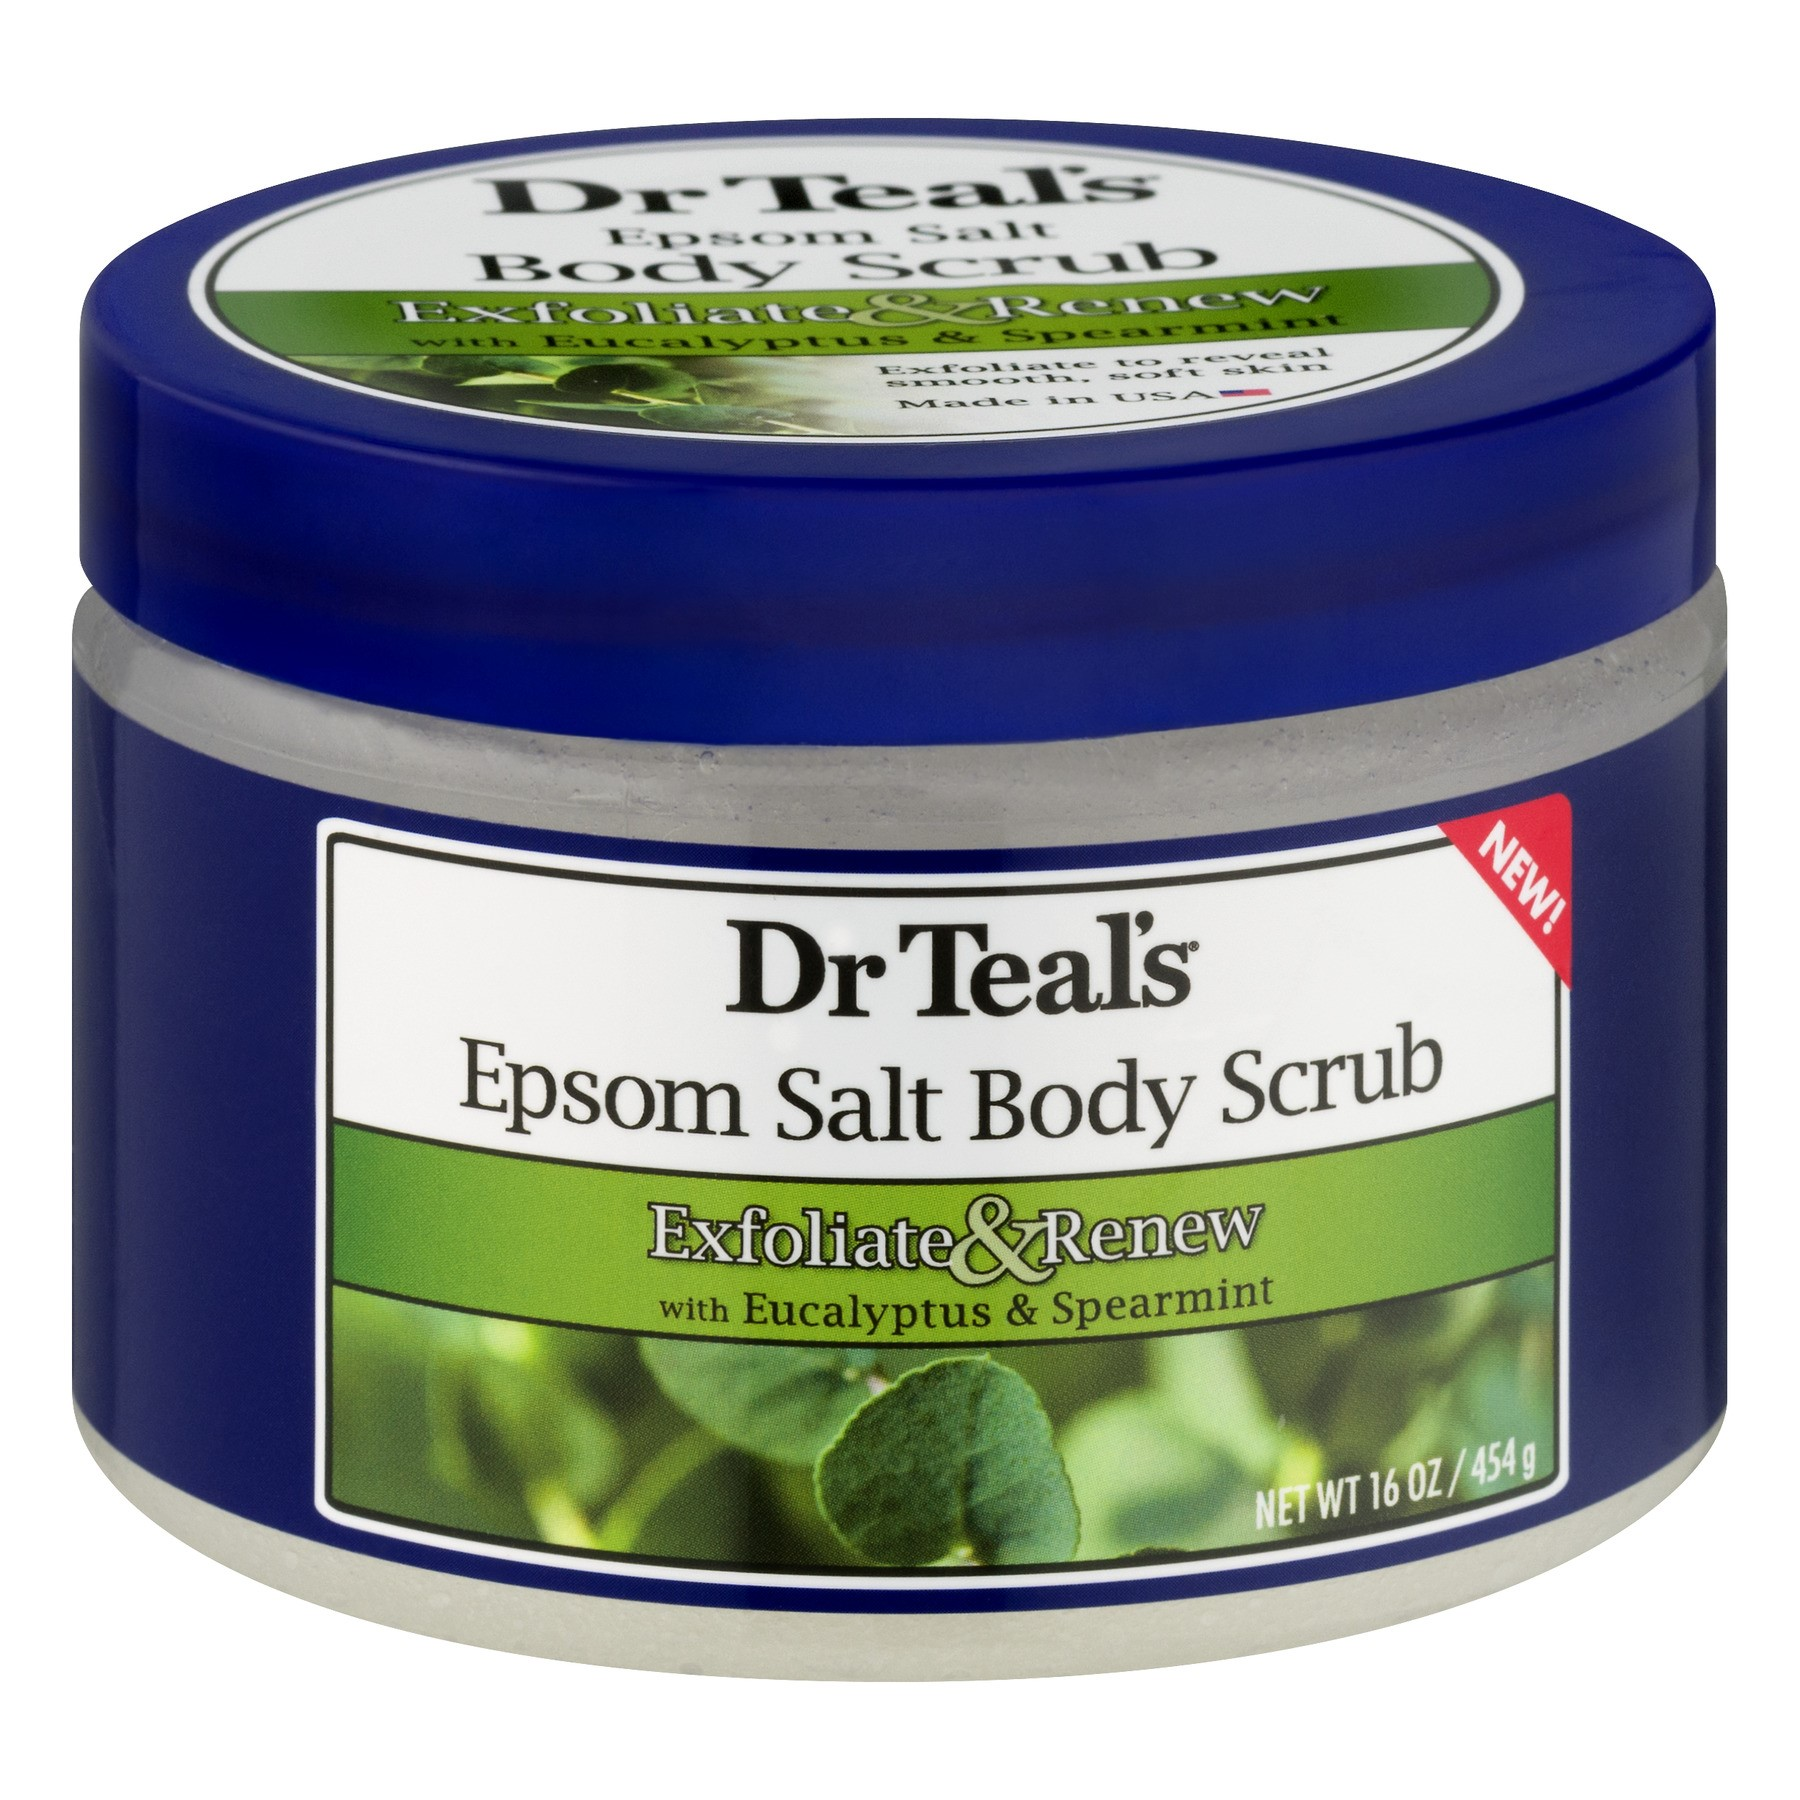 (3 pack) Dr Teal's Exfoliate & Renew with Eucalyptus & Spearmint Epsom Salt Body Scrub, 16 oz